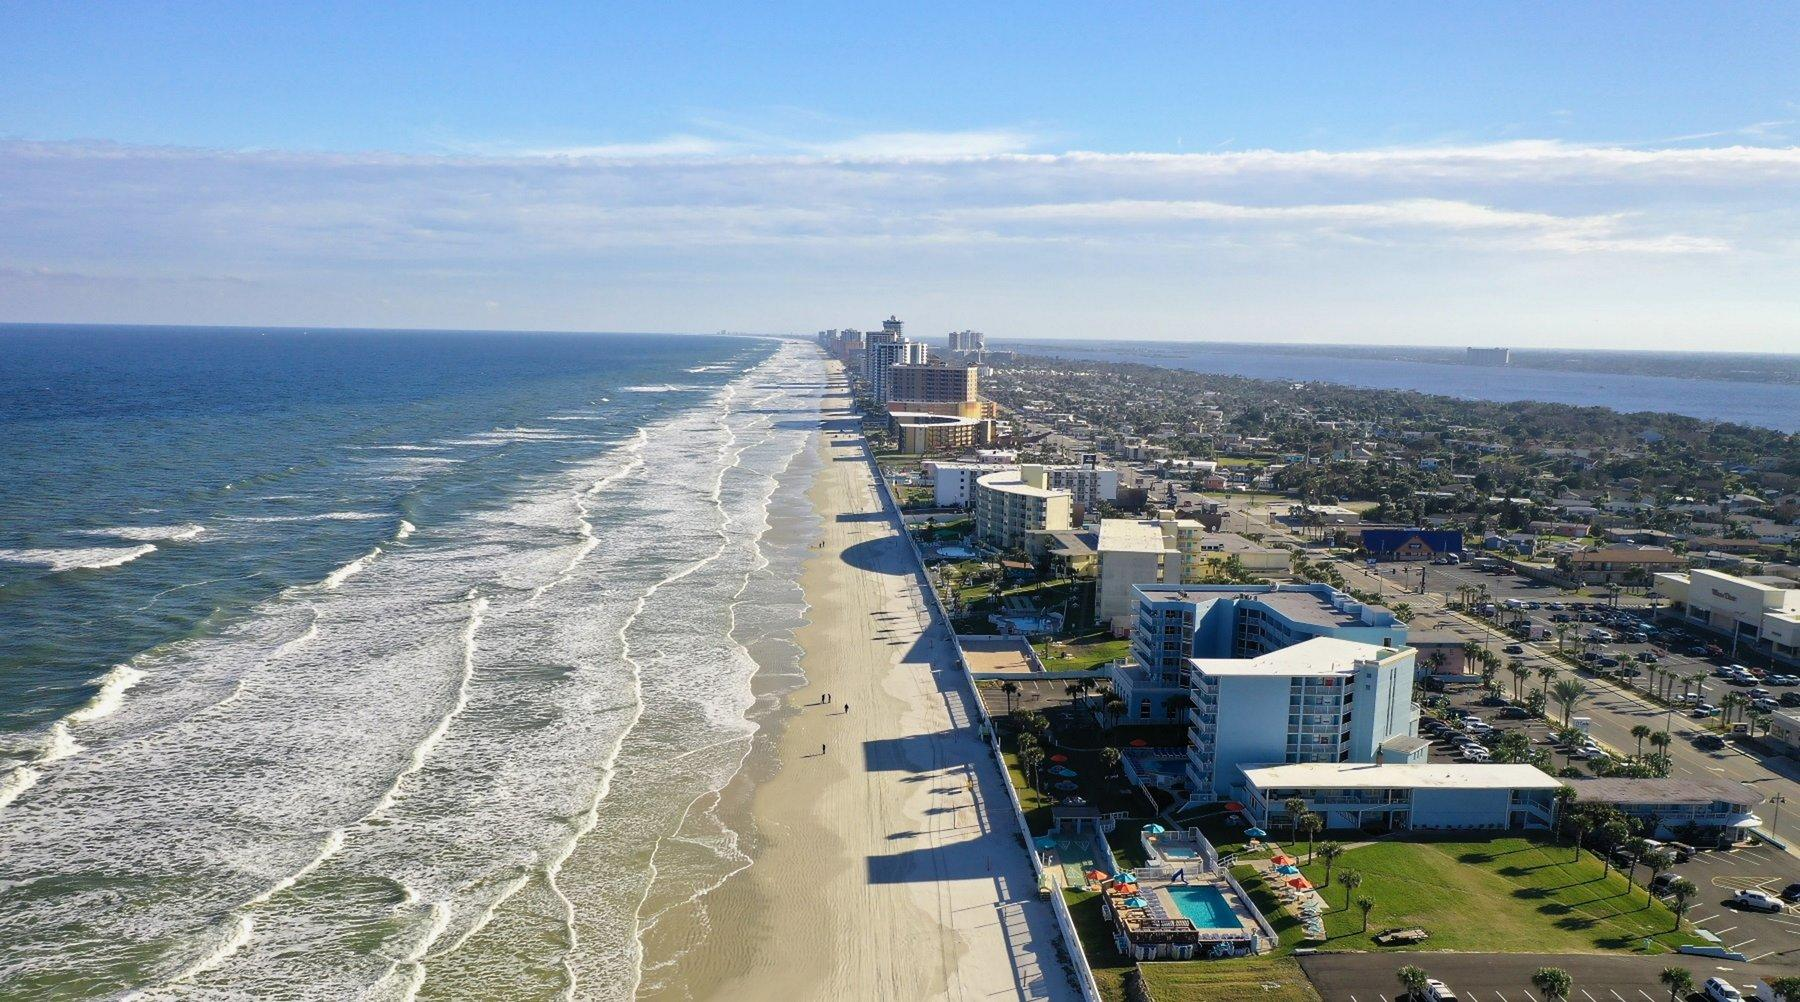 Panoramic photo of Daytona Beach.